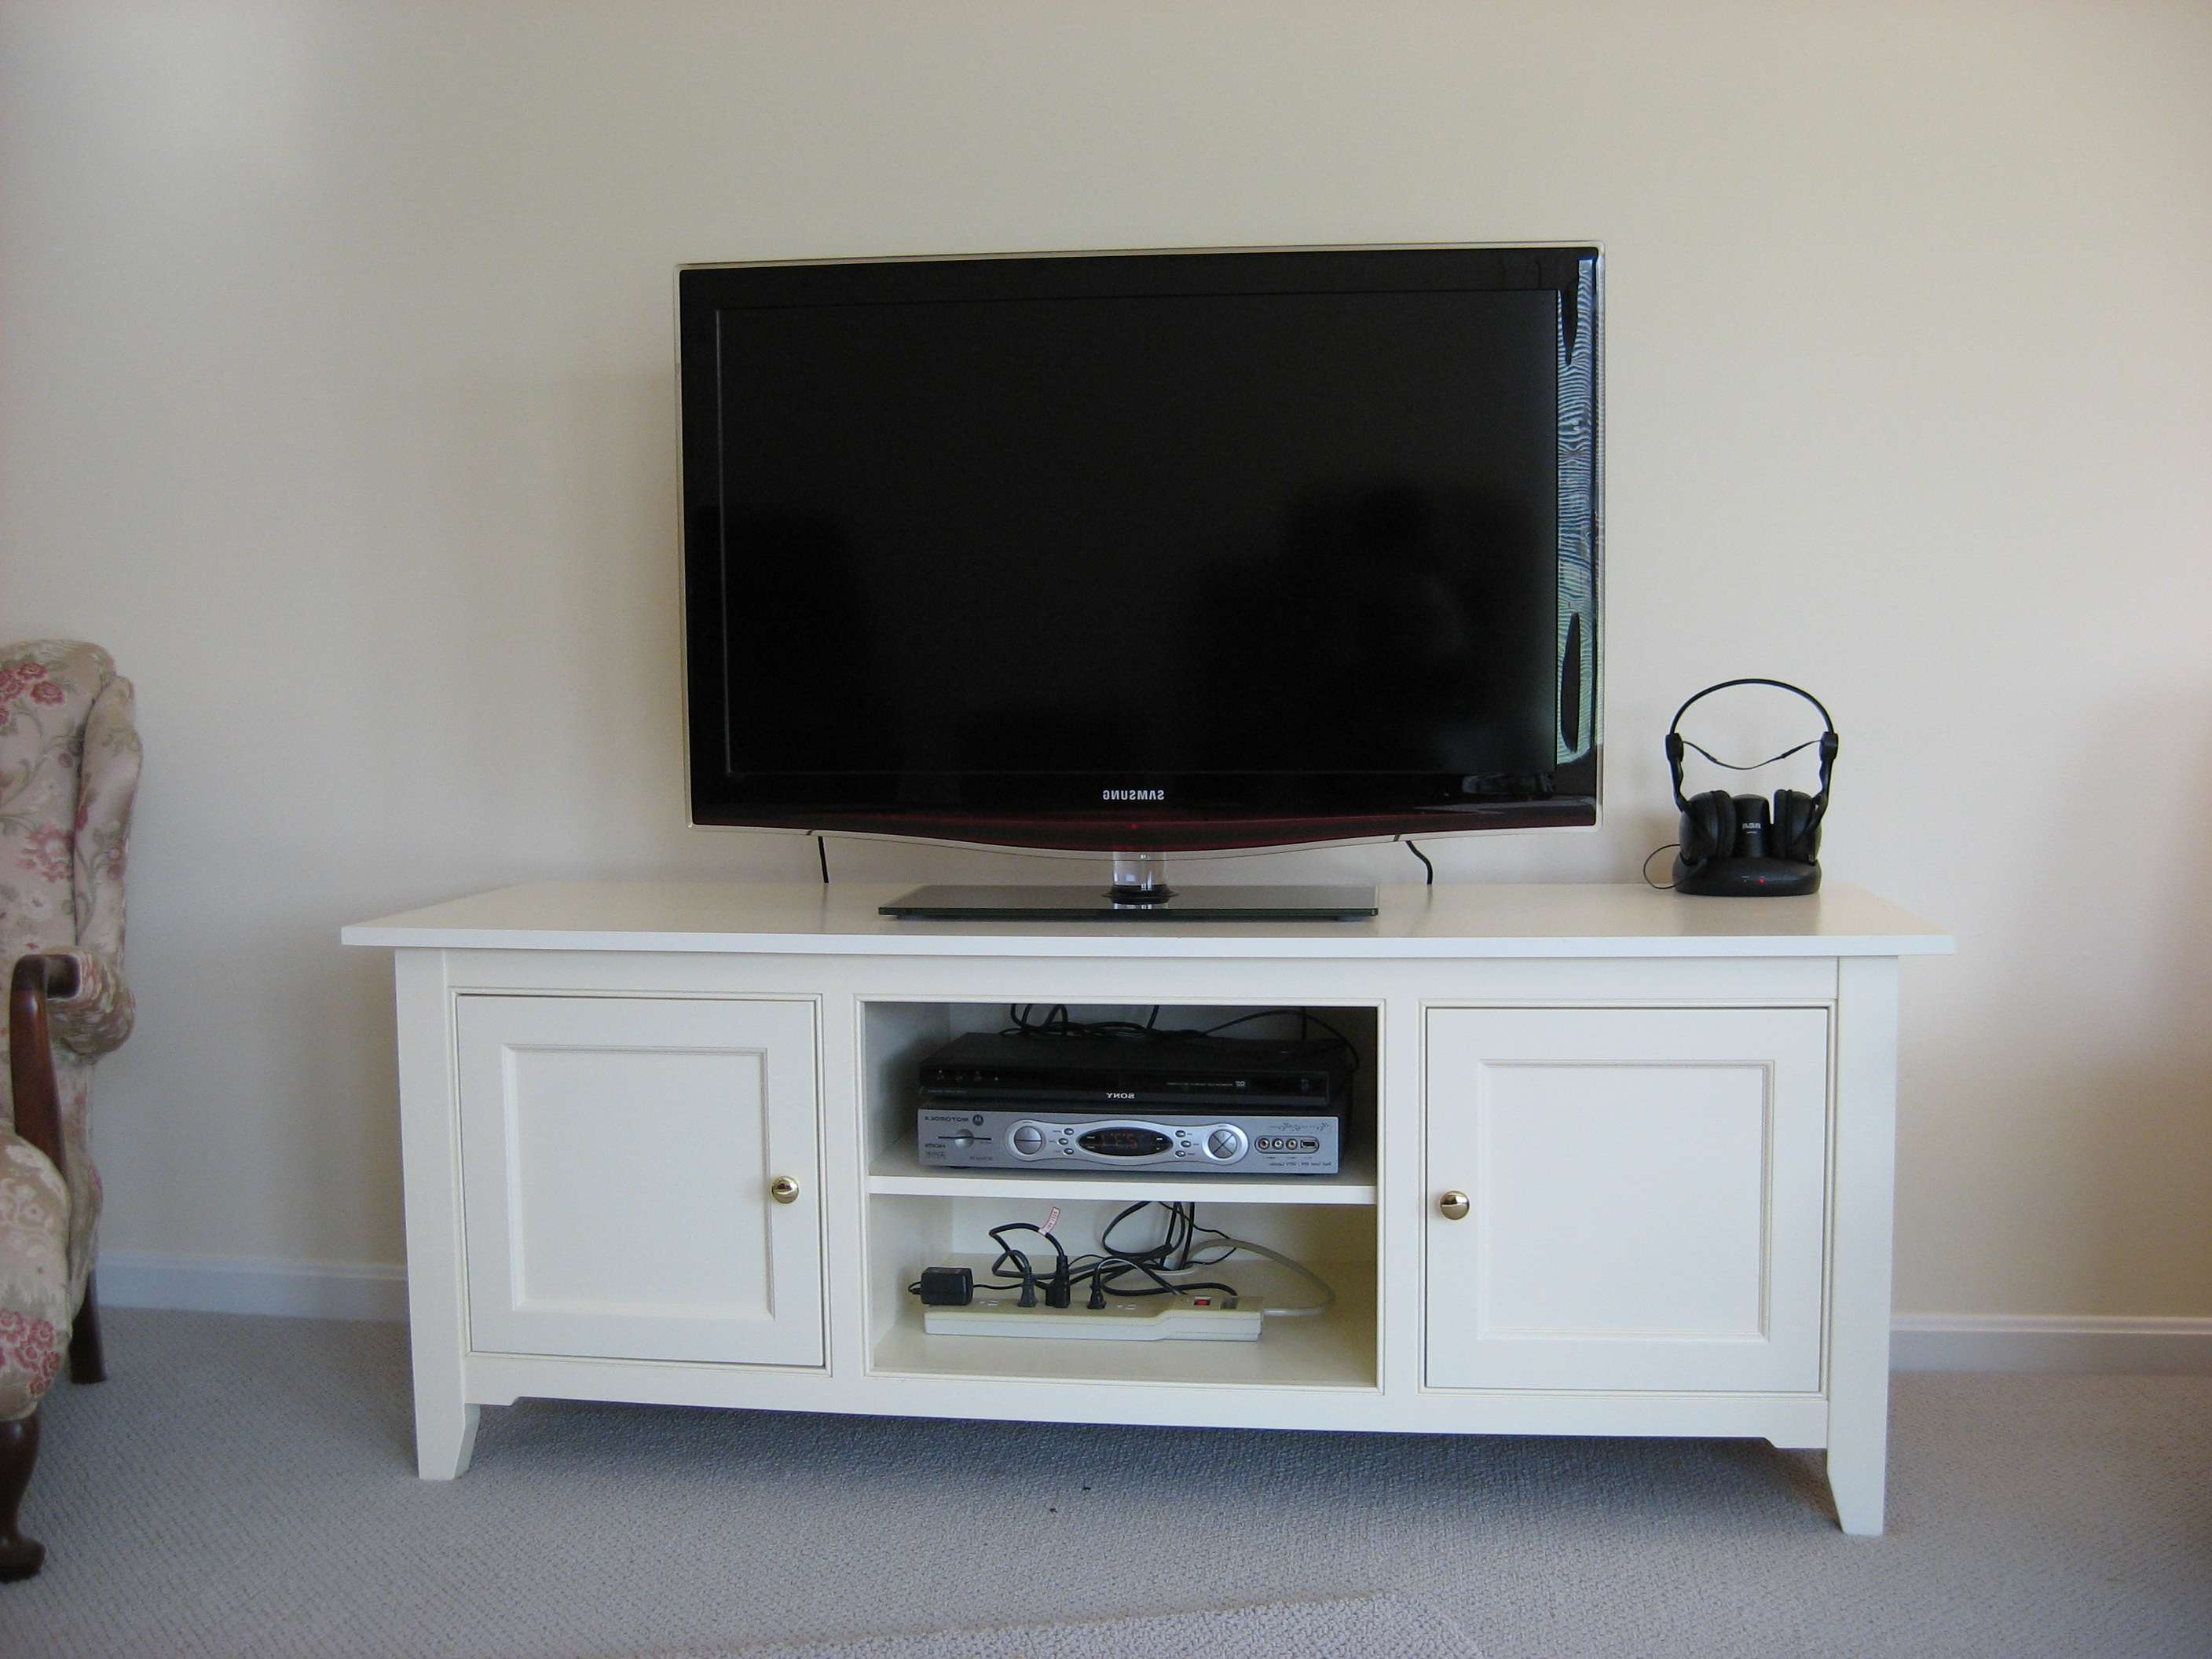 Unique Corner Tv Stands Ideas Stand With Doors Creative Cabinets Pertaining To Unique Corner Tv Stands (View 14 of 20)